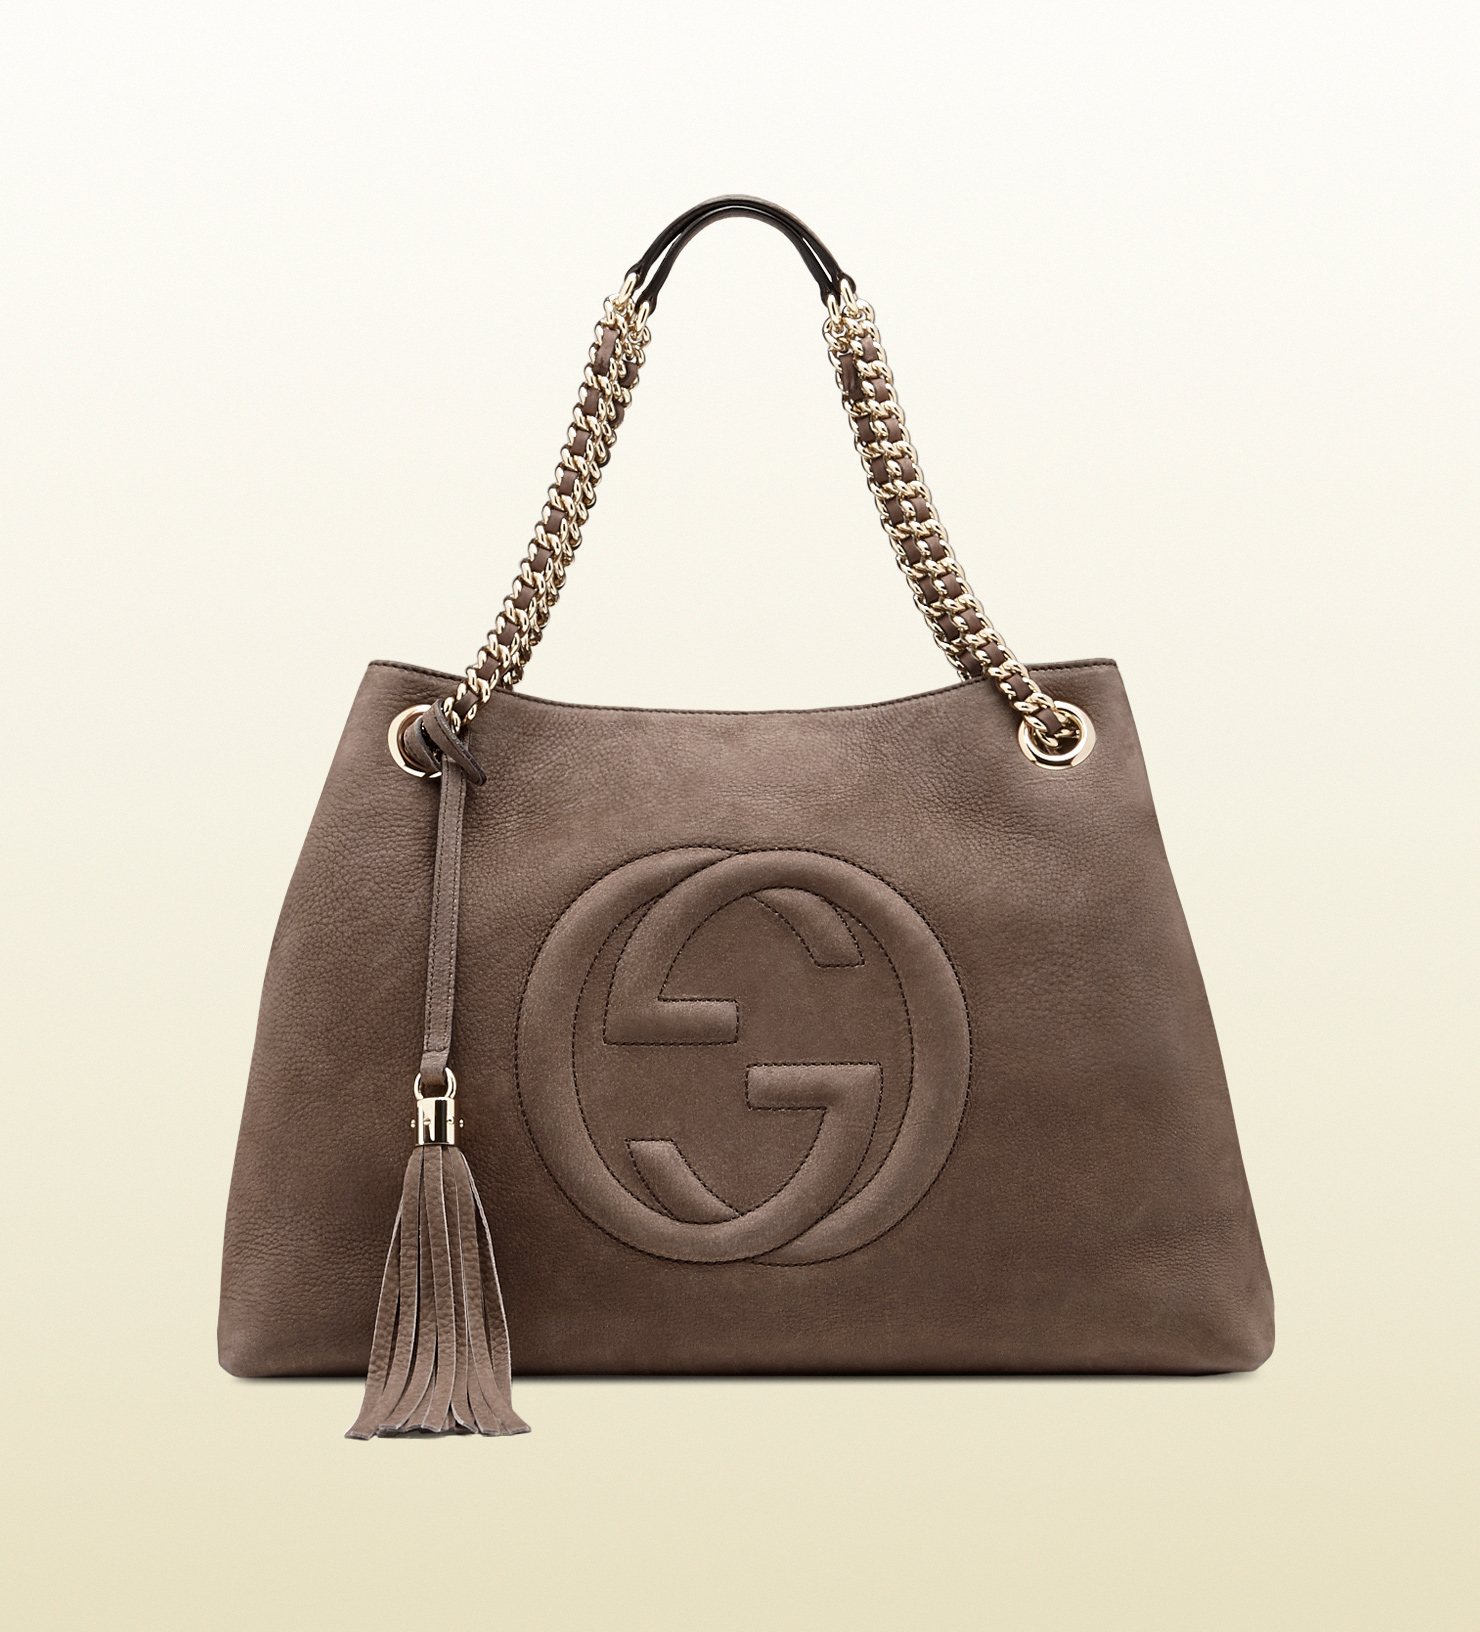 4e07d3cb1ade Lyst - Gucci Soho Nubuck Leather Shoulder Bag in Gray